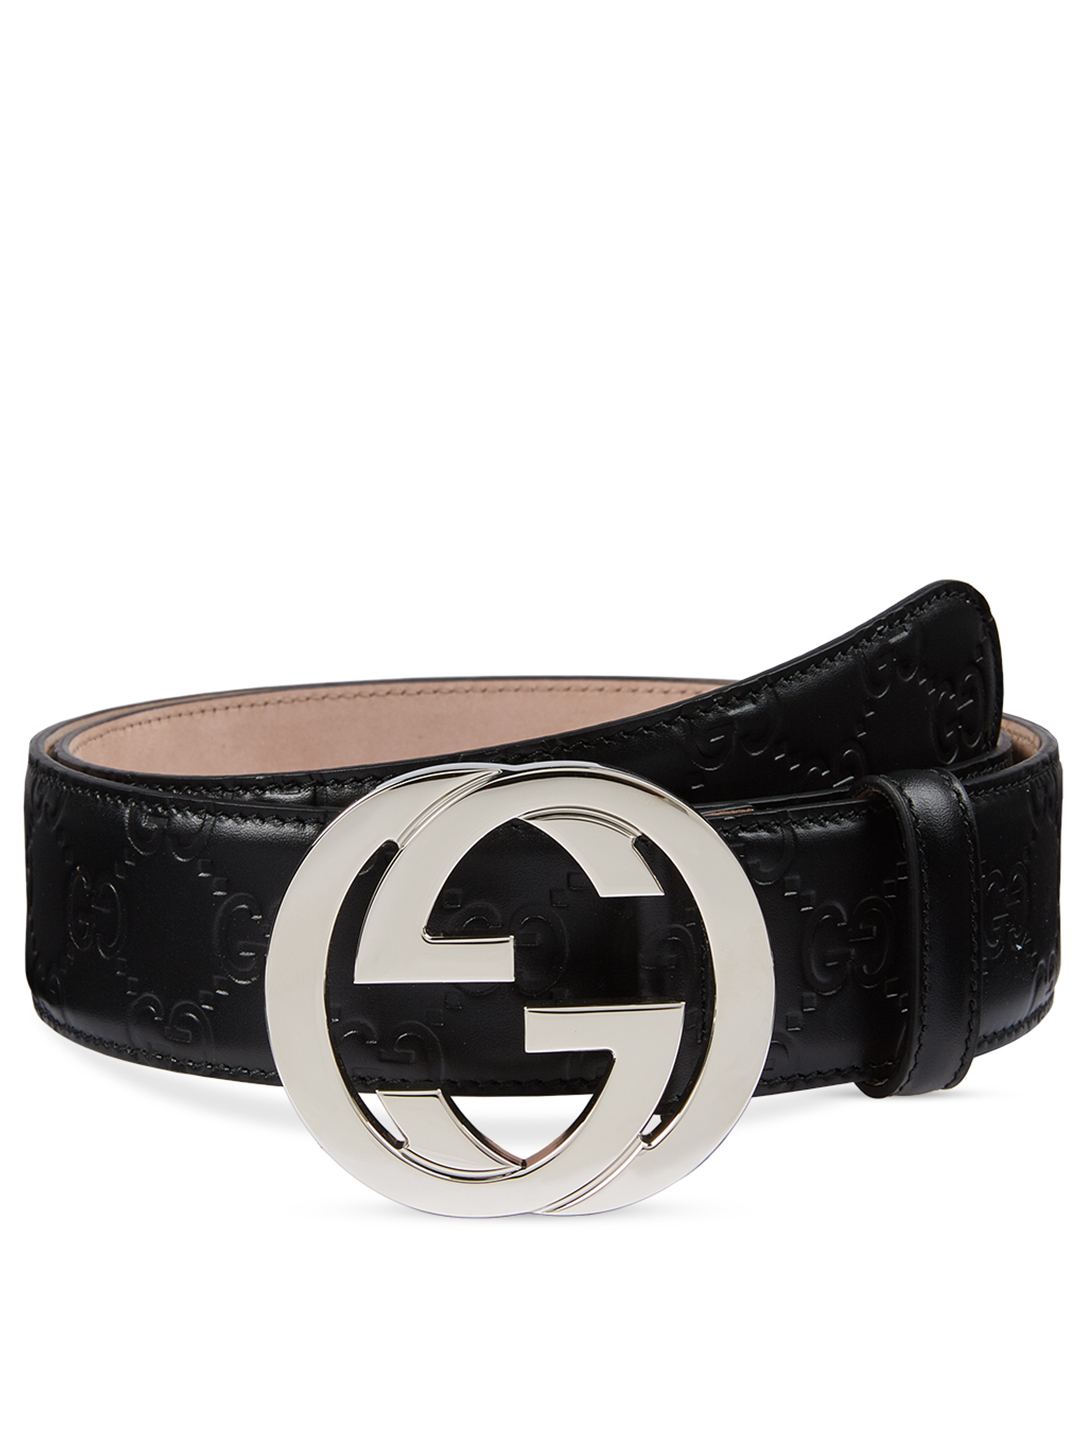 GUCCI Gucci Signature Leather Belt With G Buckle Men's Black